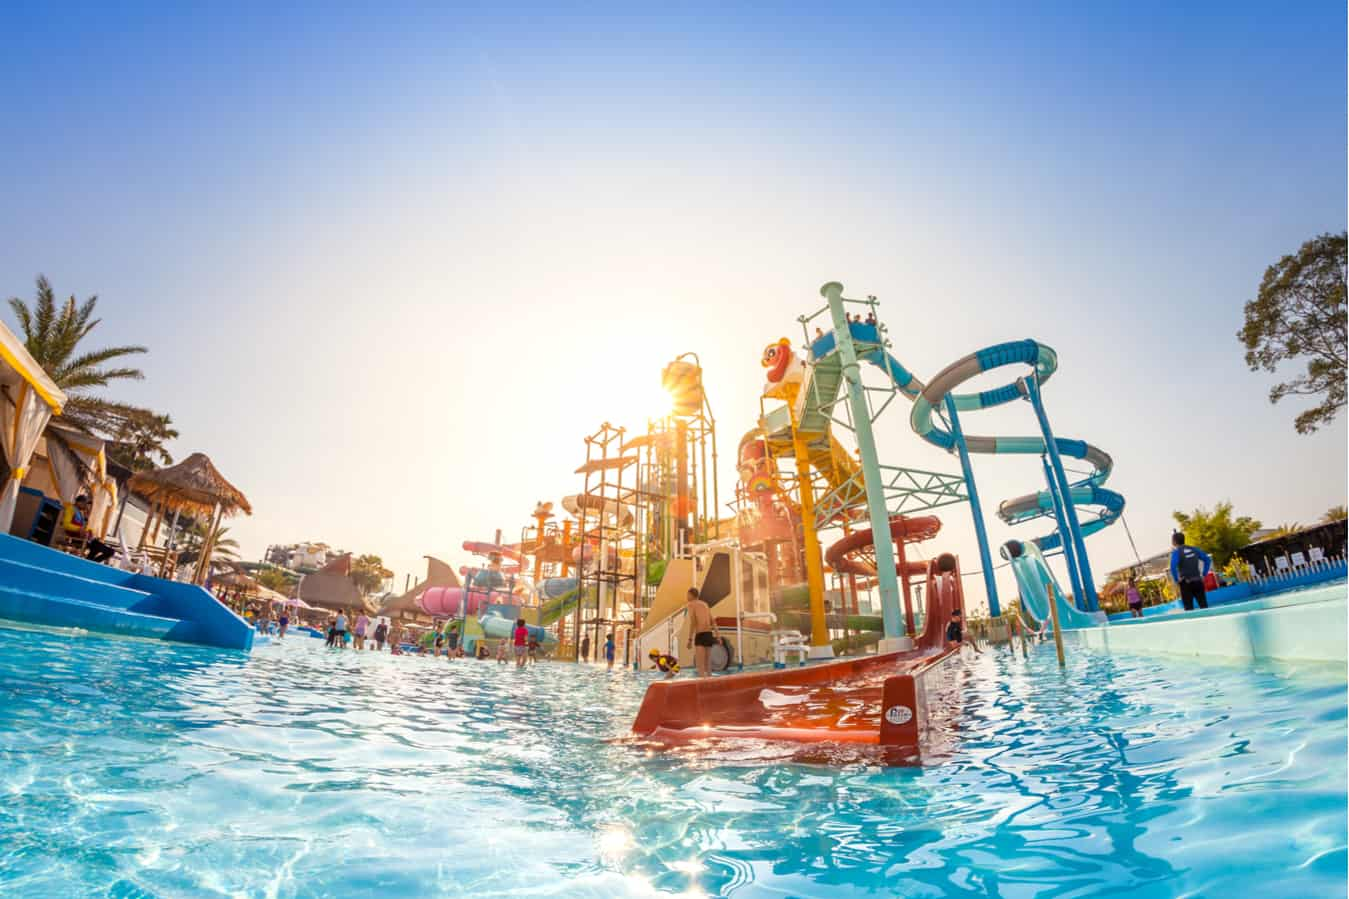 The 10 Best Water Parks In Delhi Ncr For A Great Weekend Out